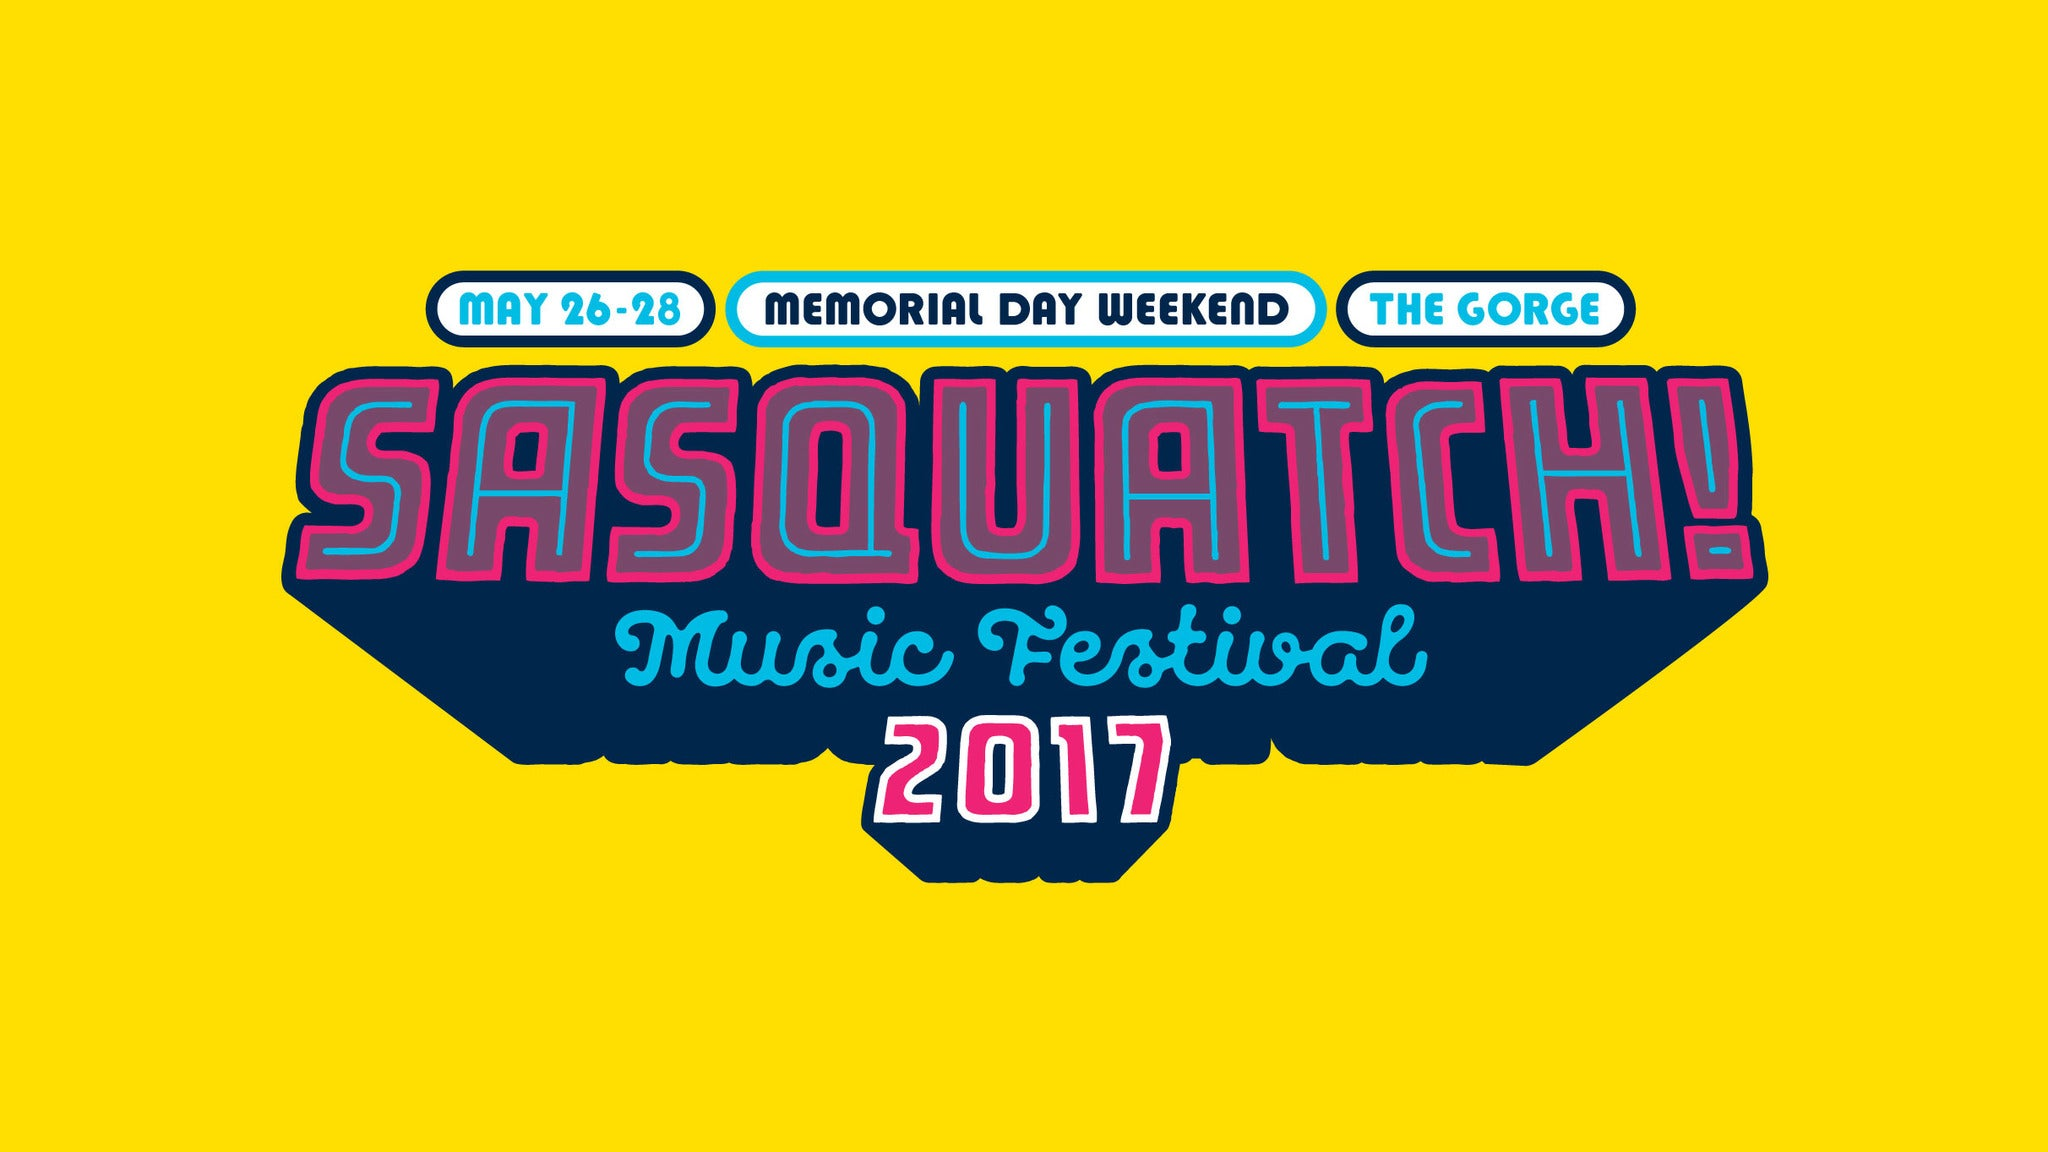 Sasquatch Festival-Three Day Pass. Sat May 26, 2017 - Sun May 28,2017